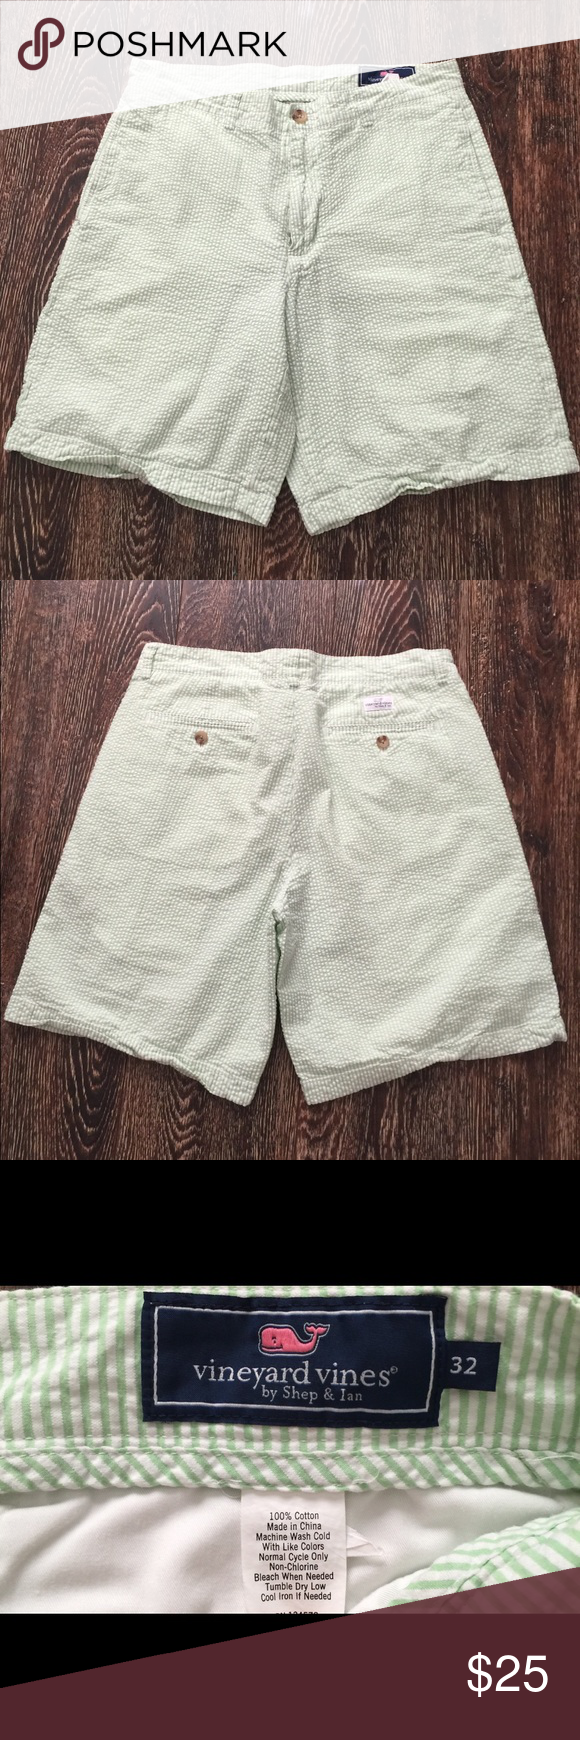 931c2808ab Vineyard vines striped textured shorts Striped light green and white short  gently owned no flows size 32 Vineyard Vines Shorts Flat Front